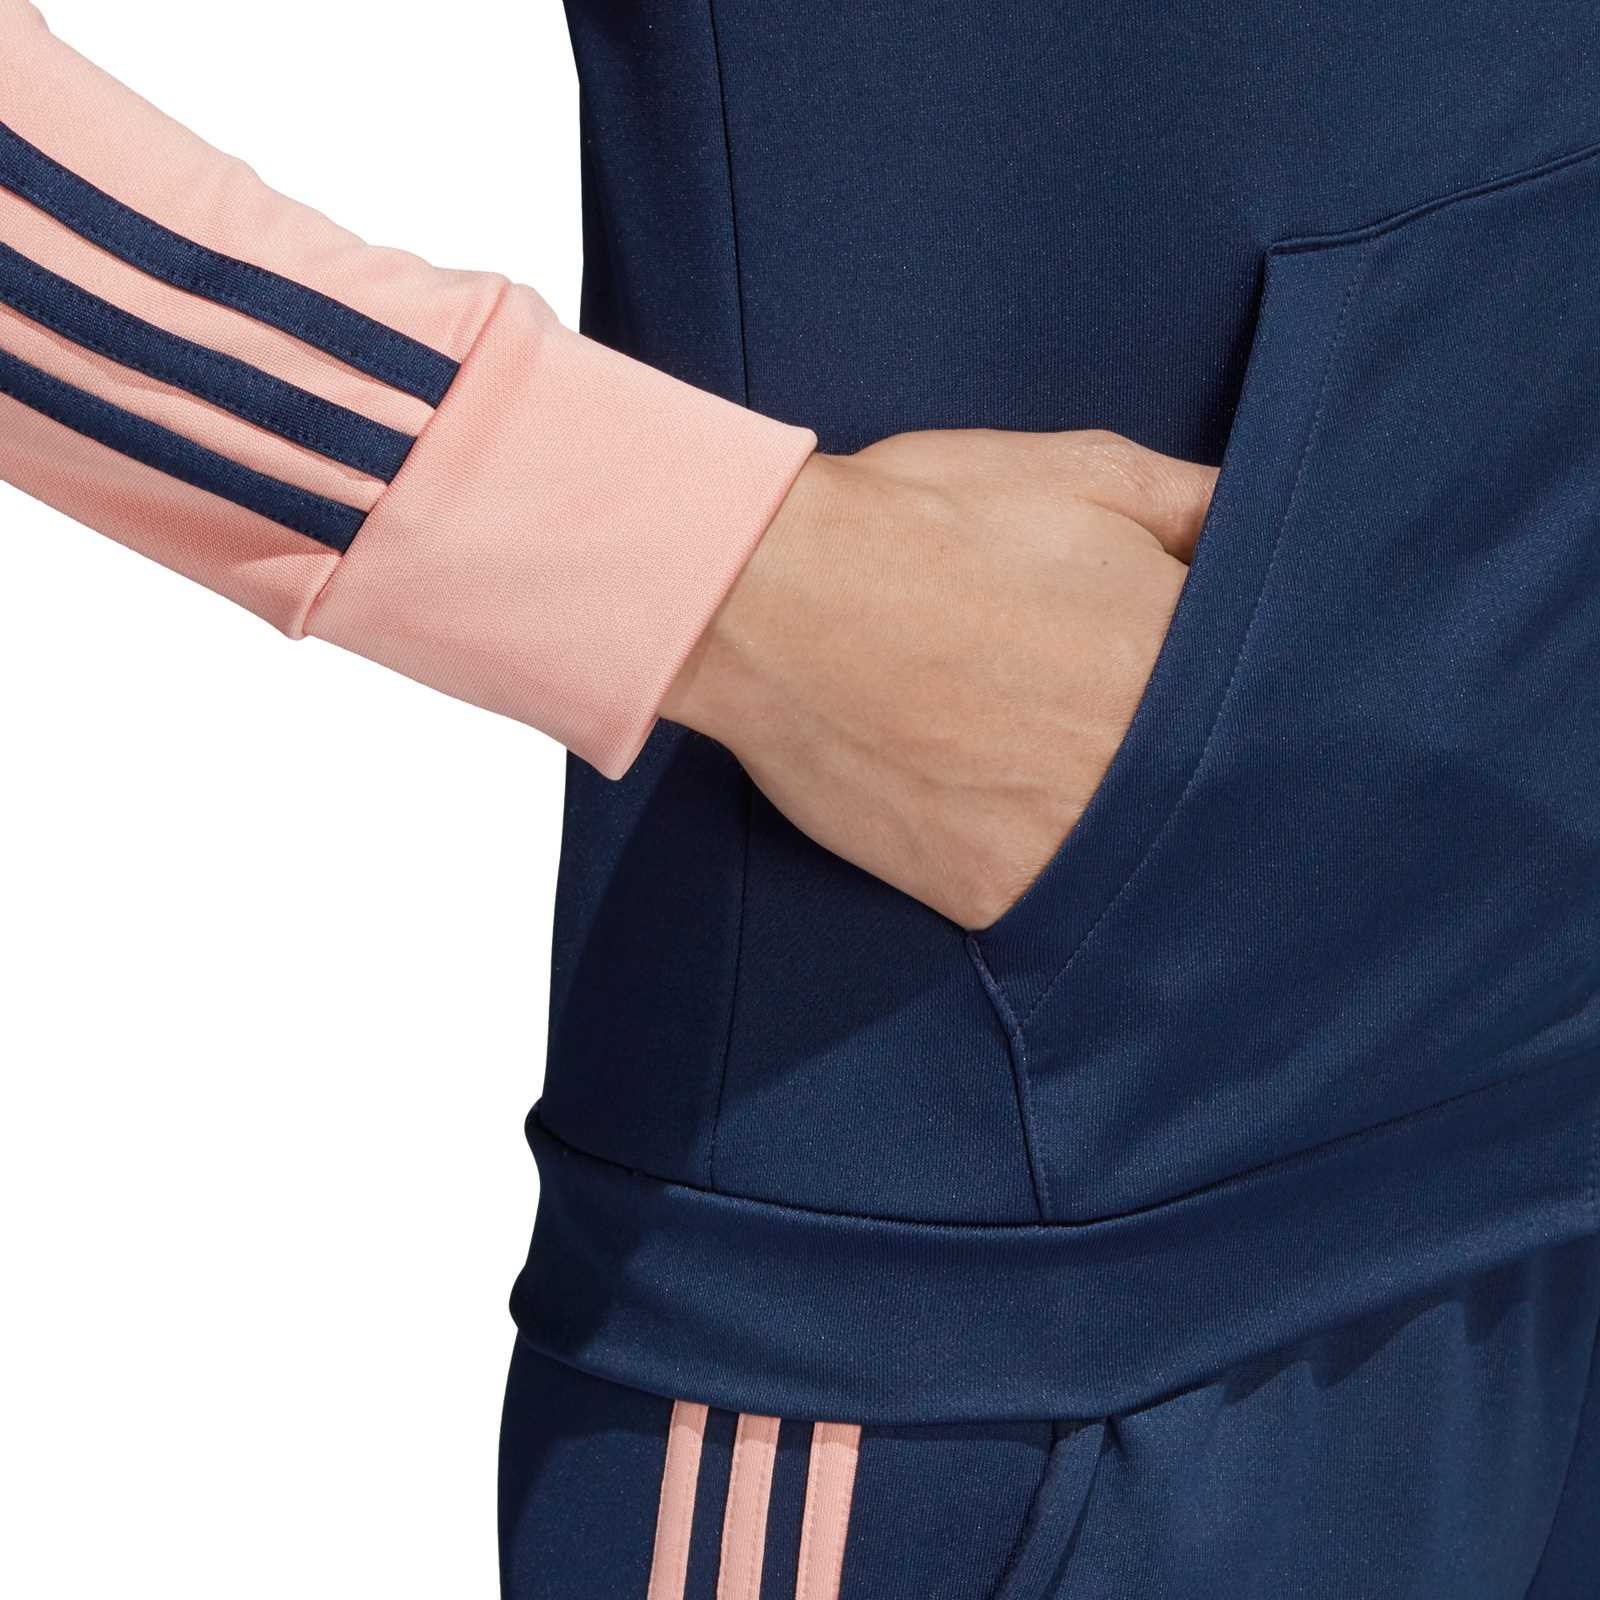 adidas performance ensemble gilet et pantalon bleu marine brandalley. Black Bedroom Furniture Sets. Home Design Ideas